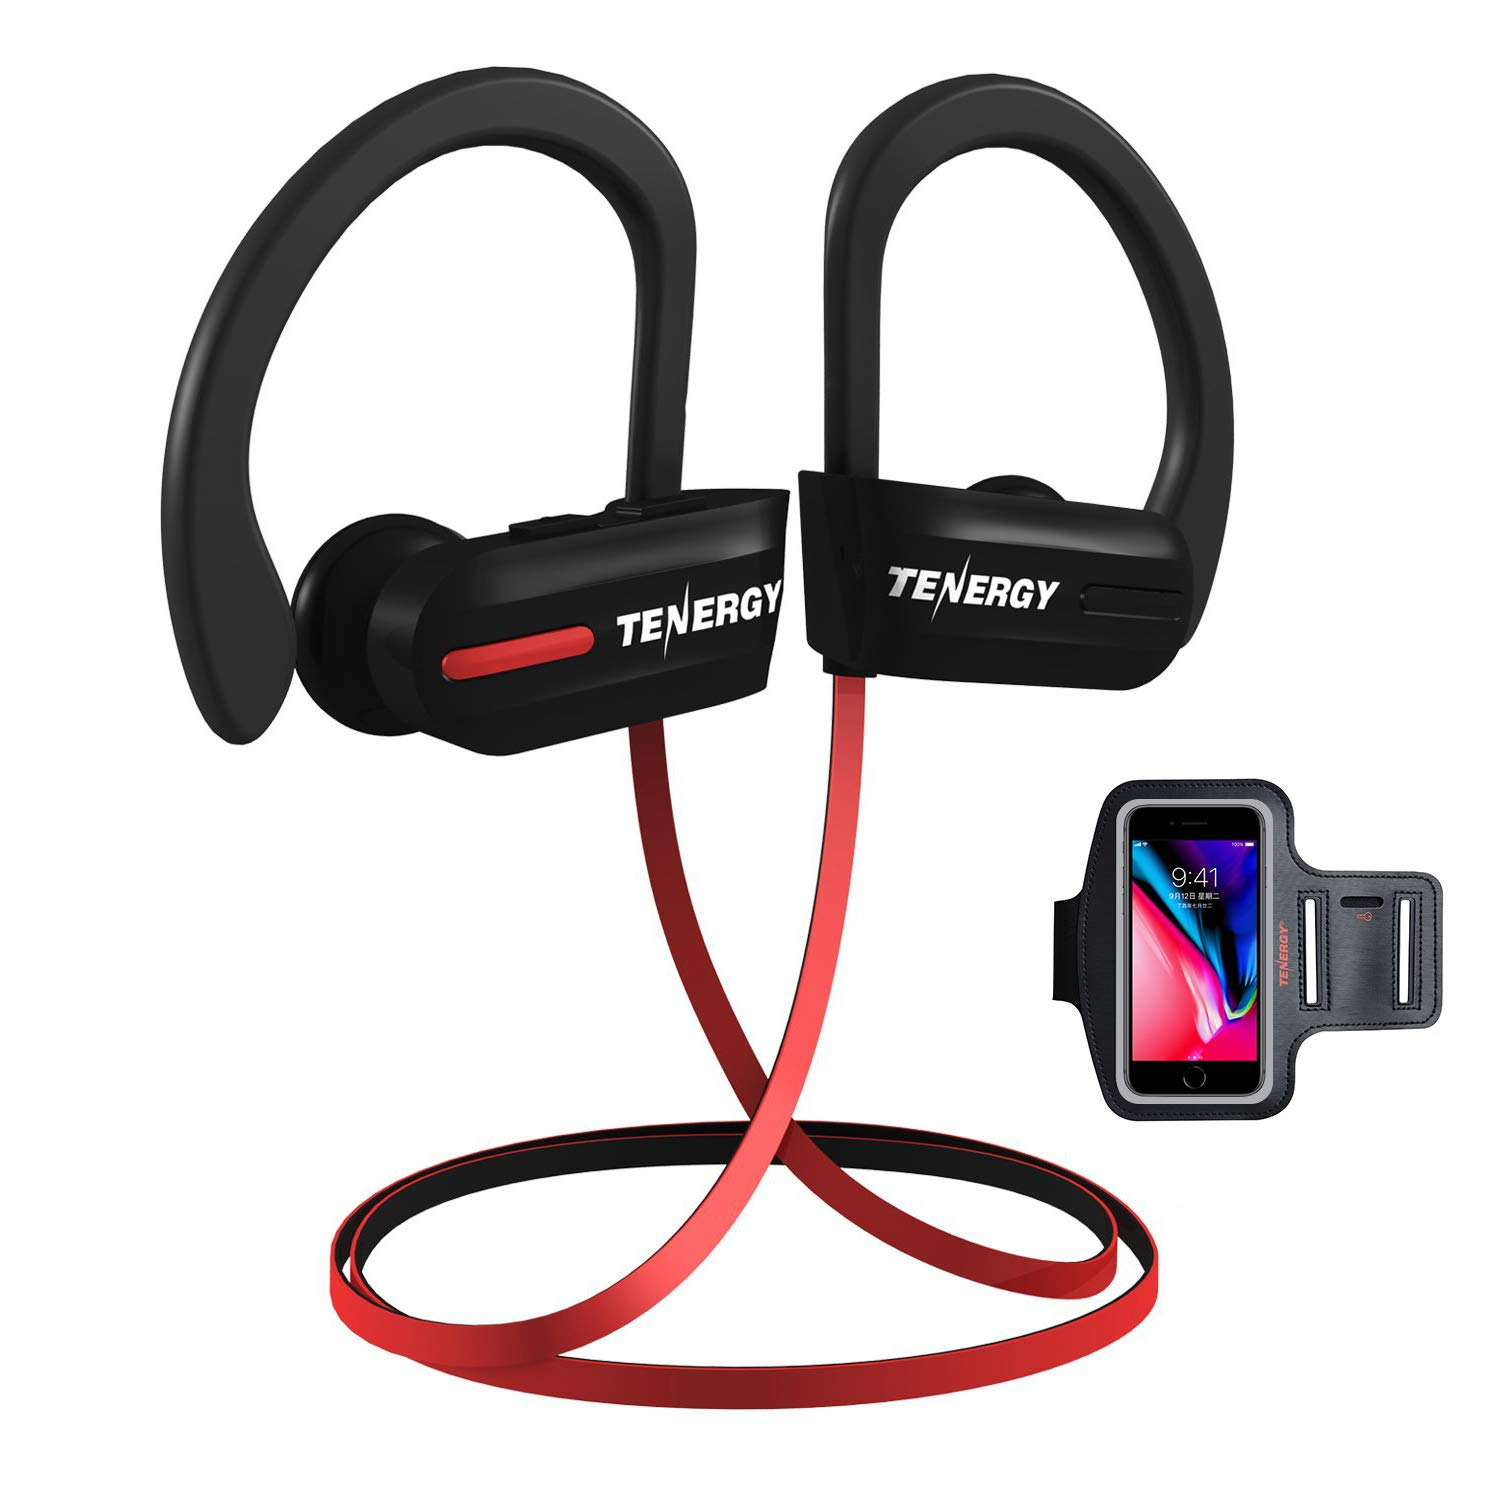 3a19082b178 Tenergy T20 Bluetooth Wireless Headphones, IPX7 Sweatproof Sports Earphones  for Running, Noise Canceling 8-Hour Working Time, in-Ear Bluetooth V4.1  Stereo ...